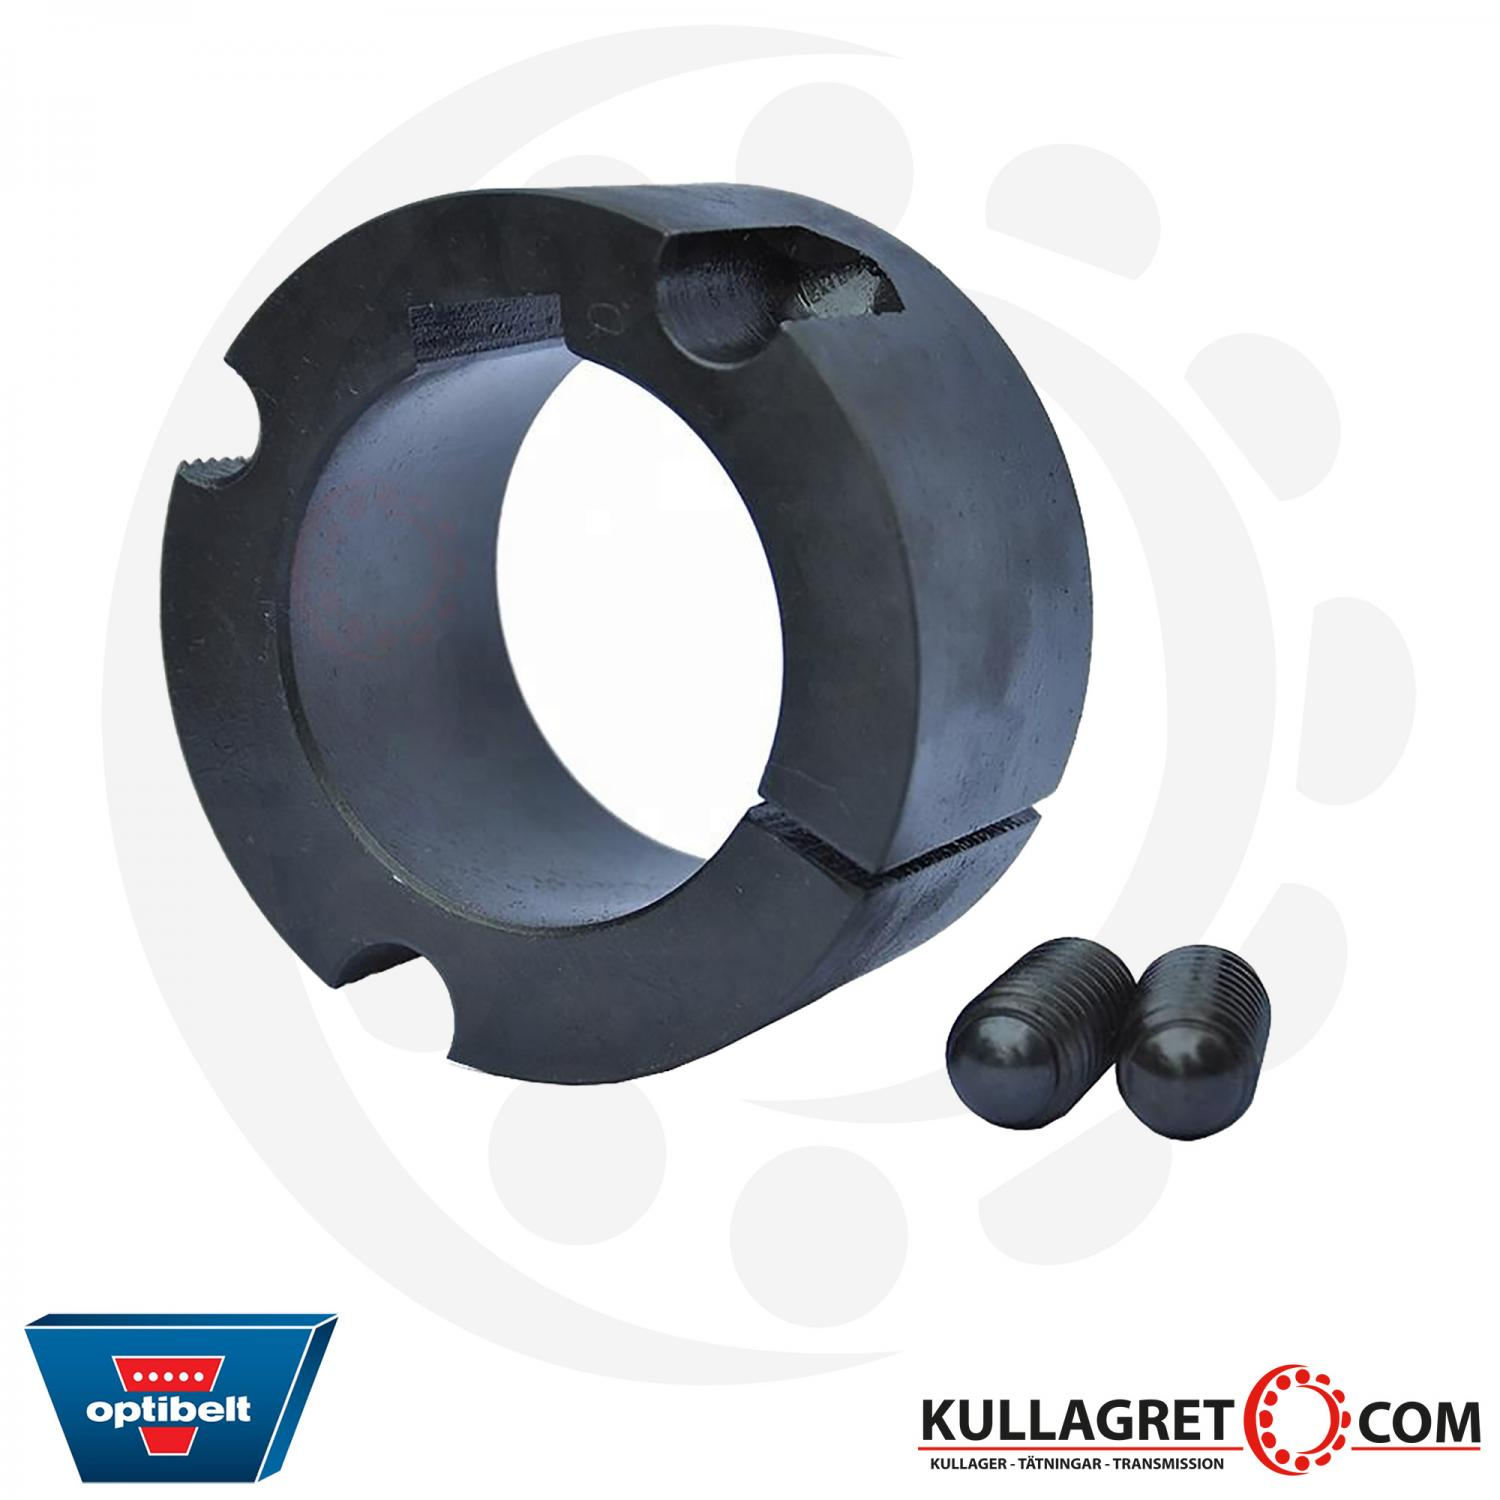 Ø12mm / 1108-12 / Klämbussning Optibelt